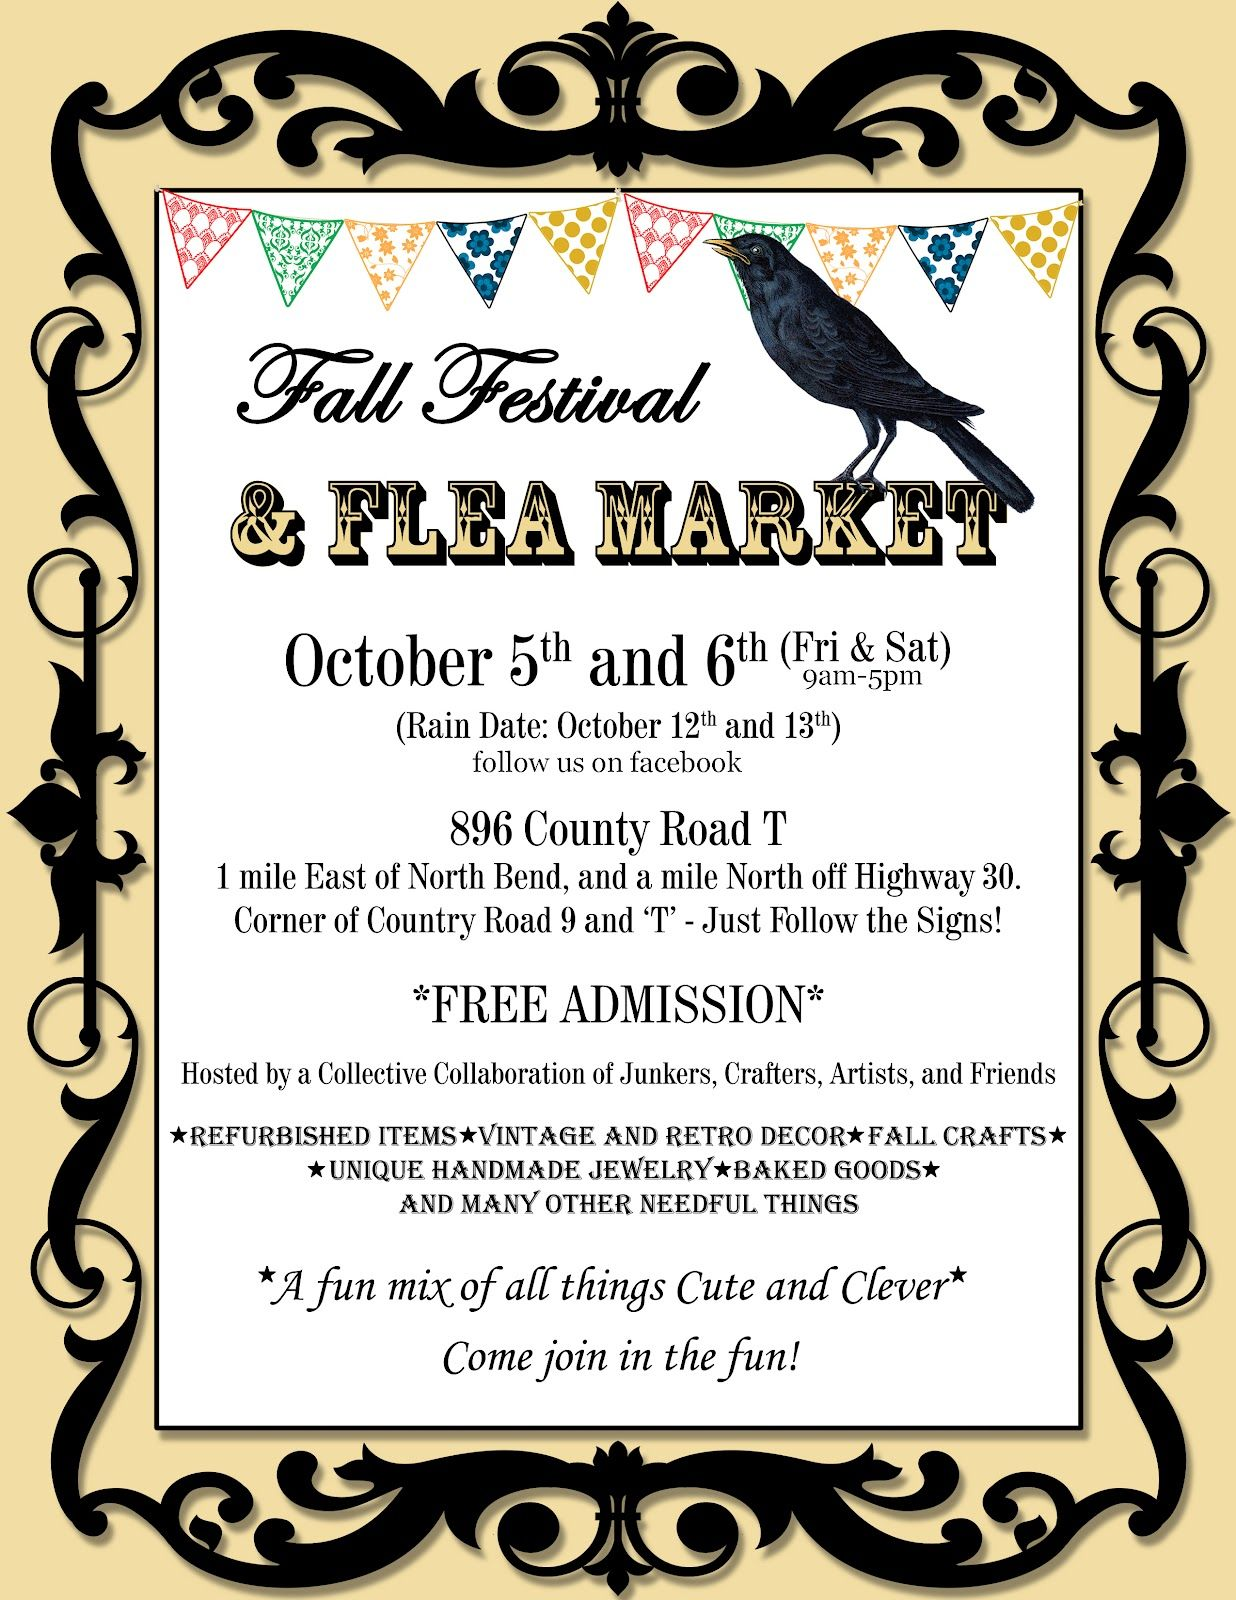 flyer border templates gallery images for fall festival flyer border templates 19 gallery images for fall festival flyer